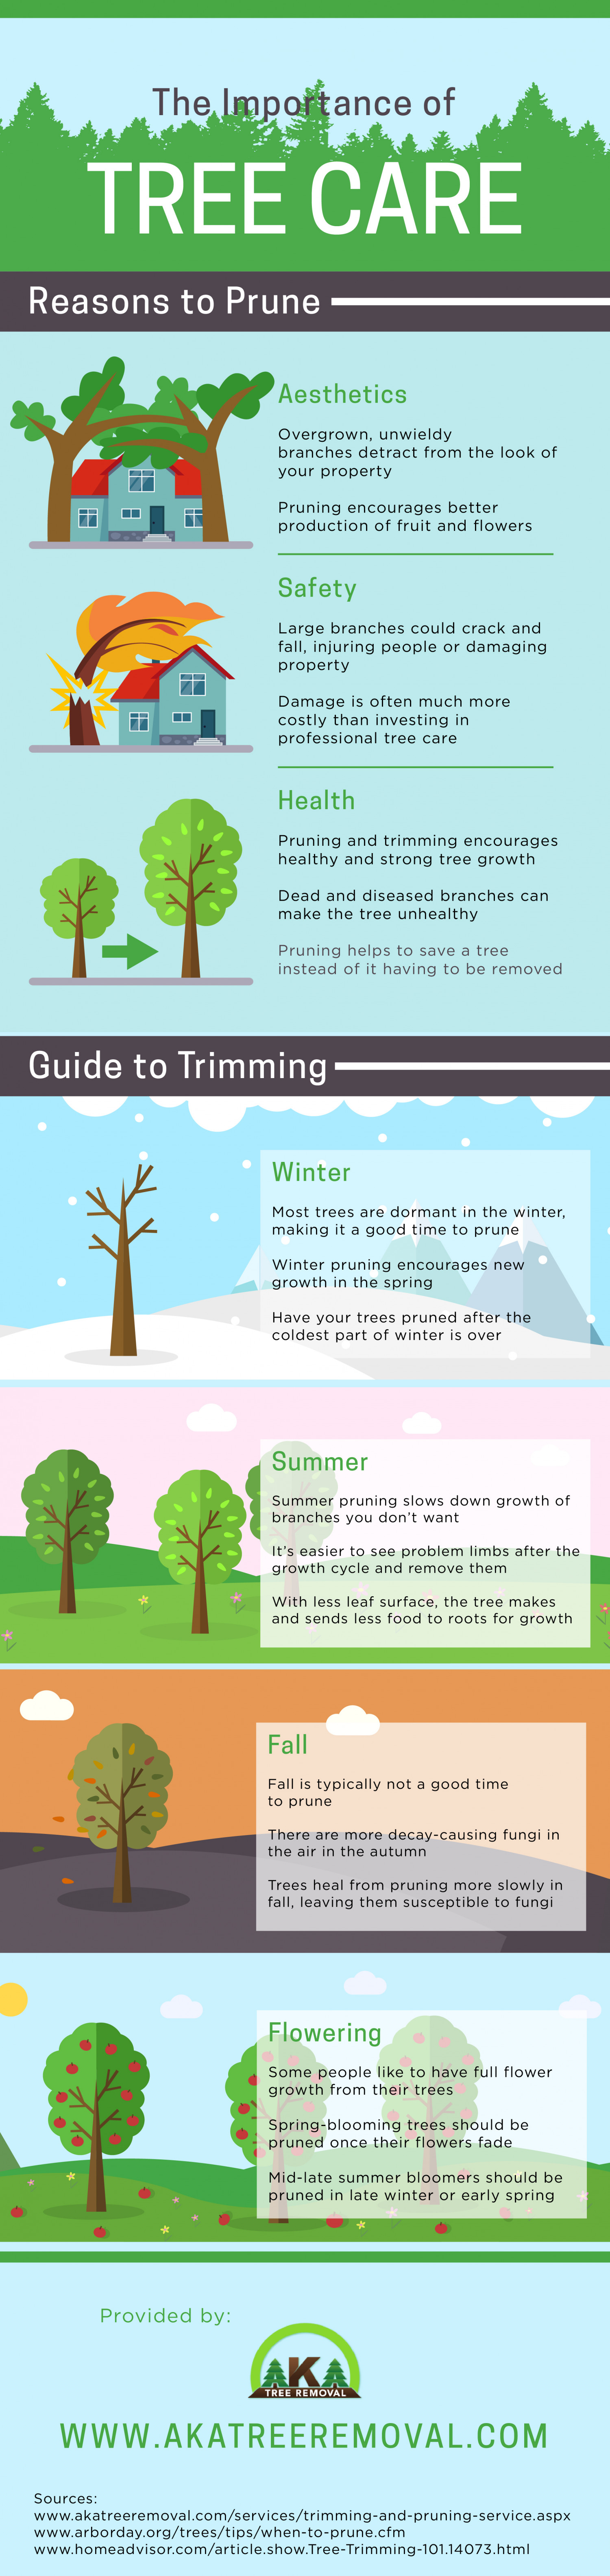 The Importance of Tree Care Infographic